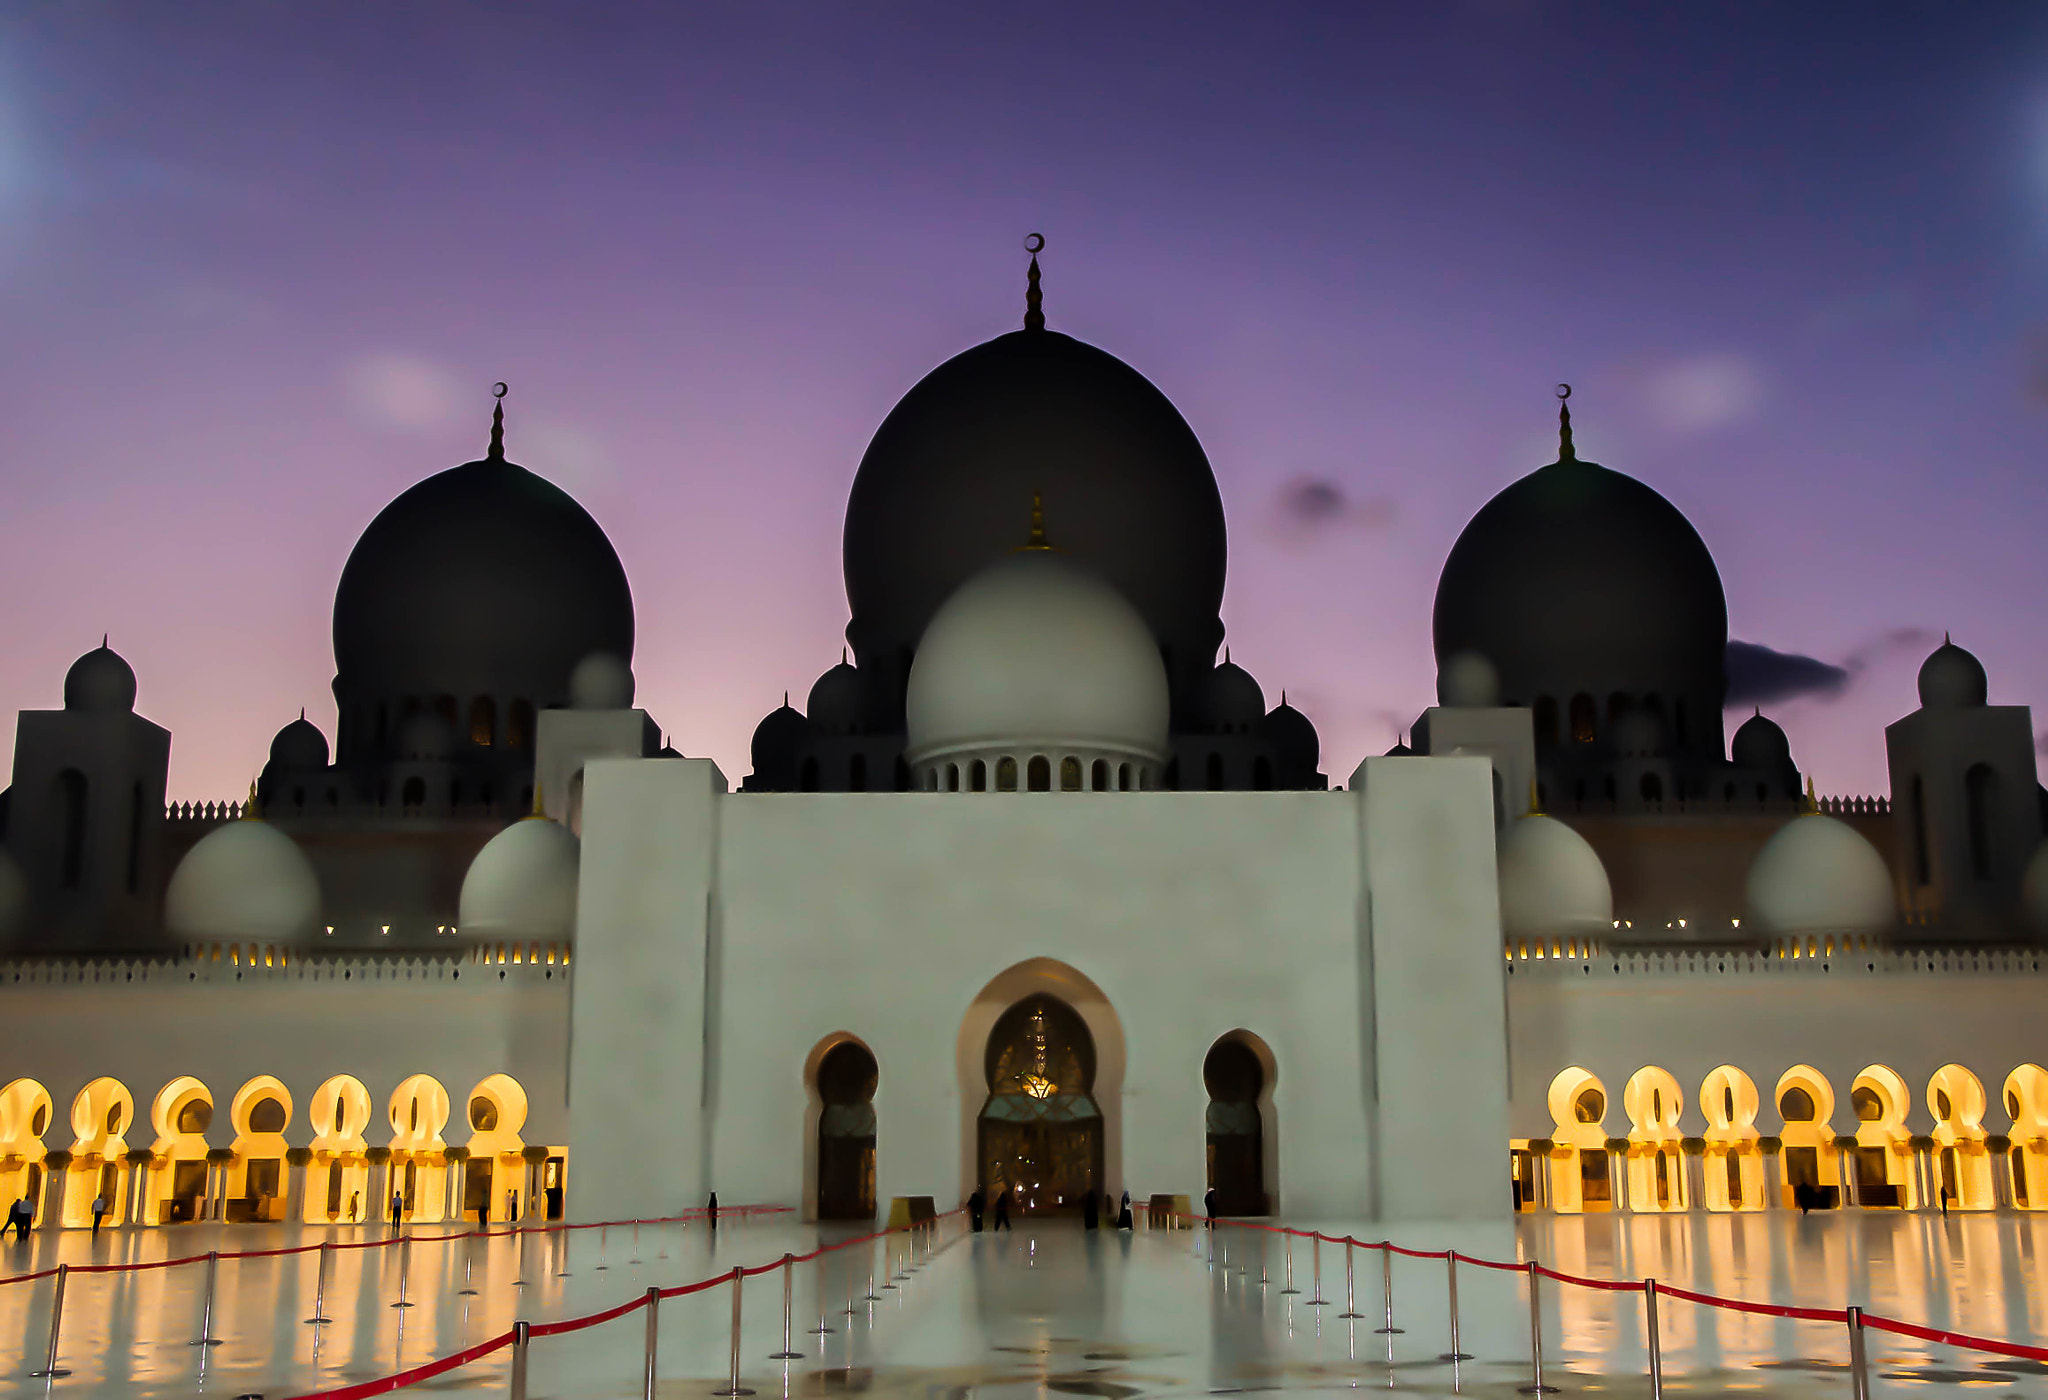 Photograph The Grand Mosque at Dusk by julian john on 500px